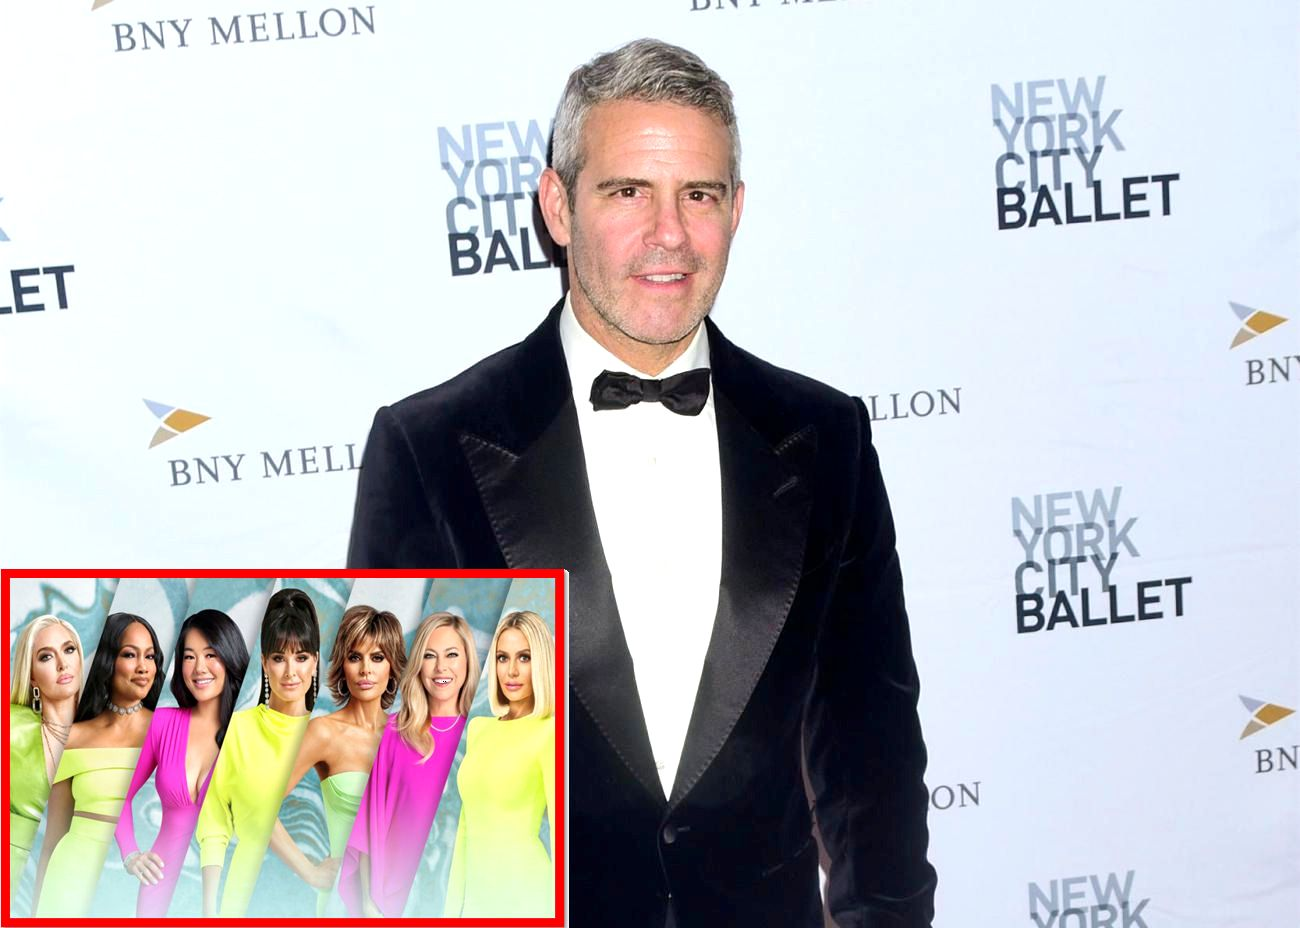 """Andy Cohen Dishes on RHOBH Reunion, Claims Erika Jayne """"Answers Everything"""" as He Reveals Topics Discussed, and Confirms Drama Between Garcelle and Dorit, Plus Footage Leaks"""